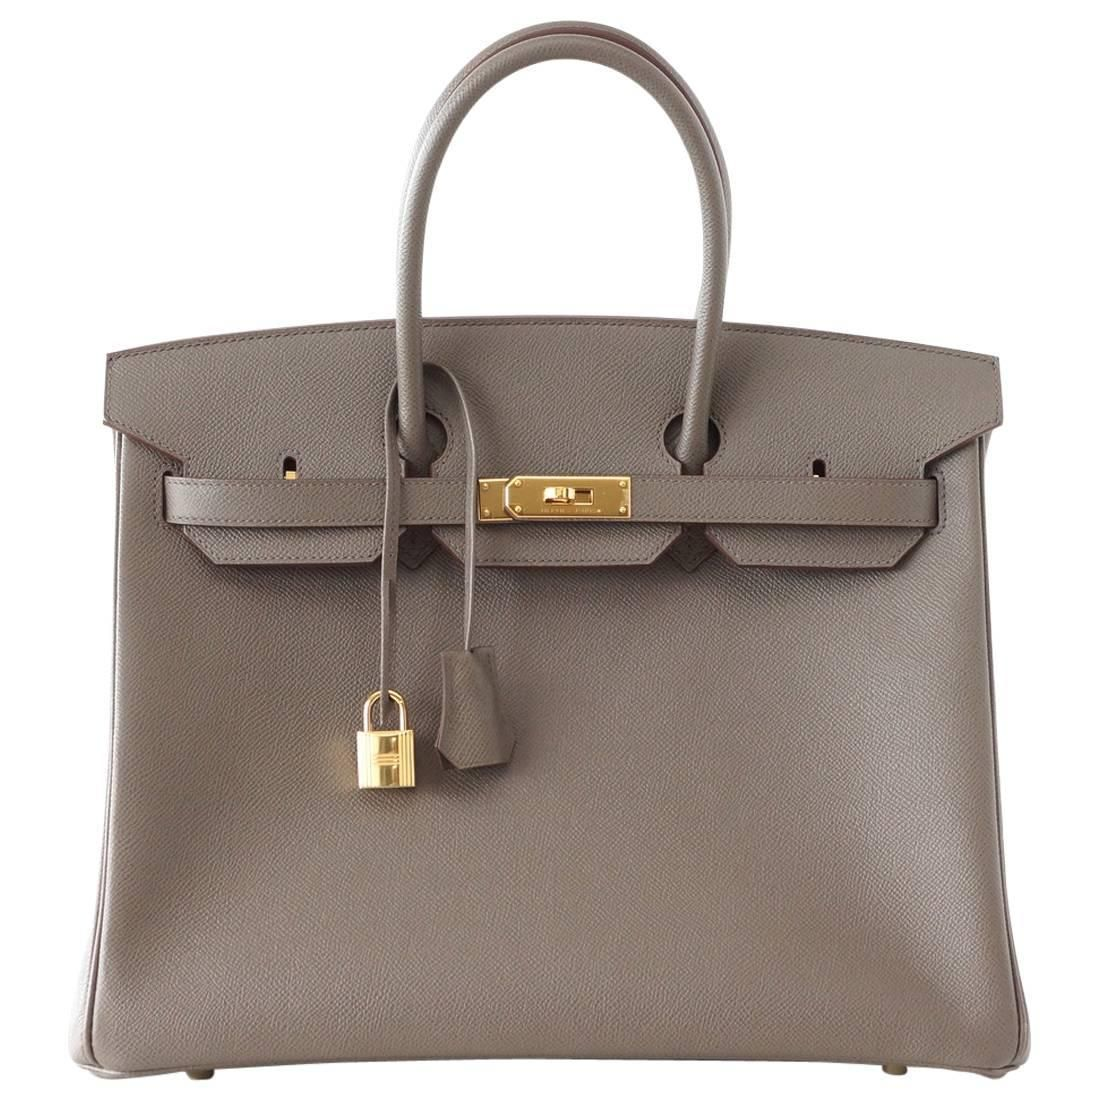 085bf67fd15 HERMES BIRKIN 35 bag ETAIN gray epsom gold hardware | From mightychic at  https:/